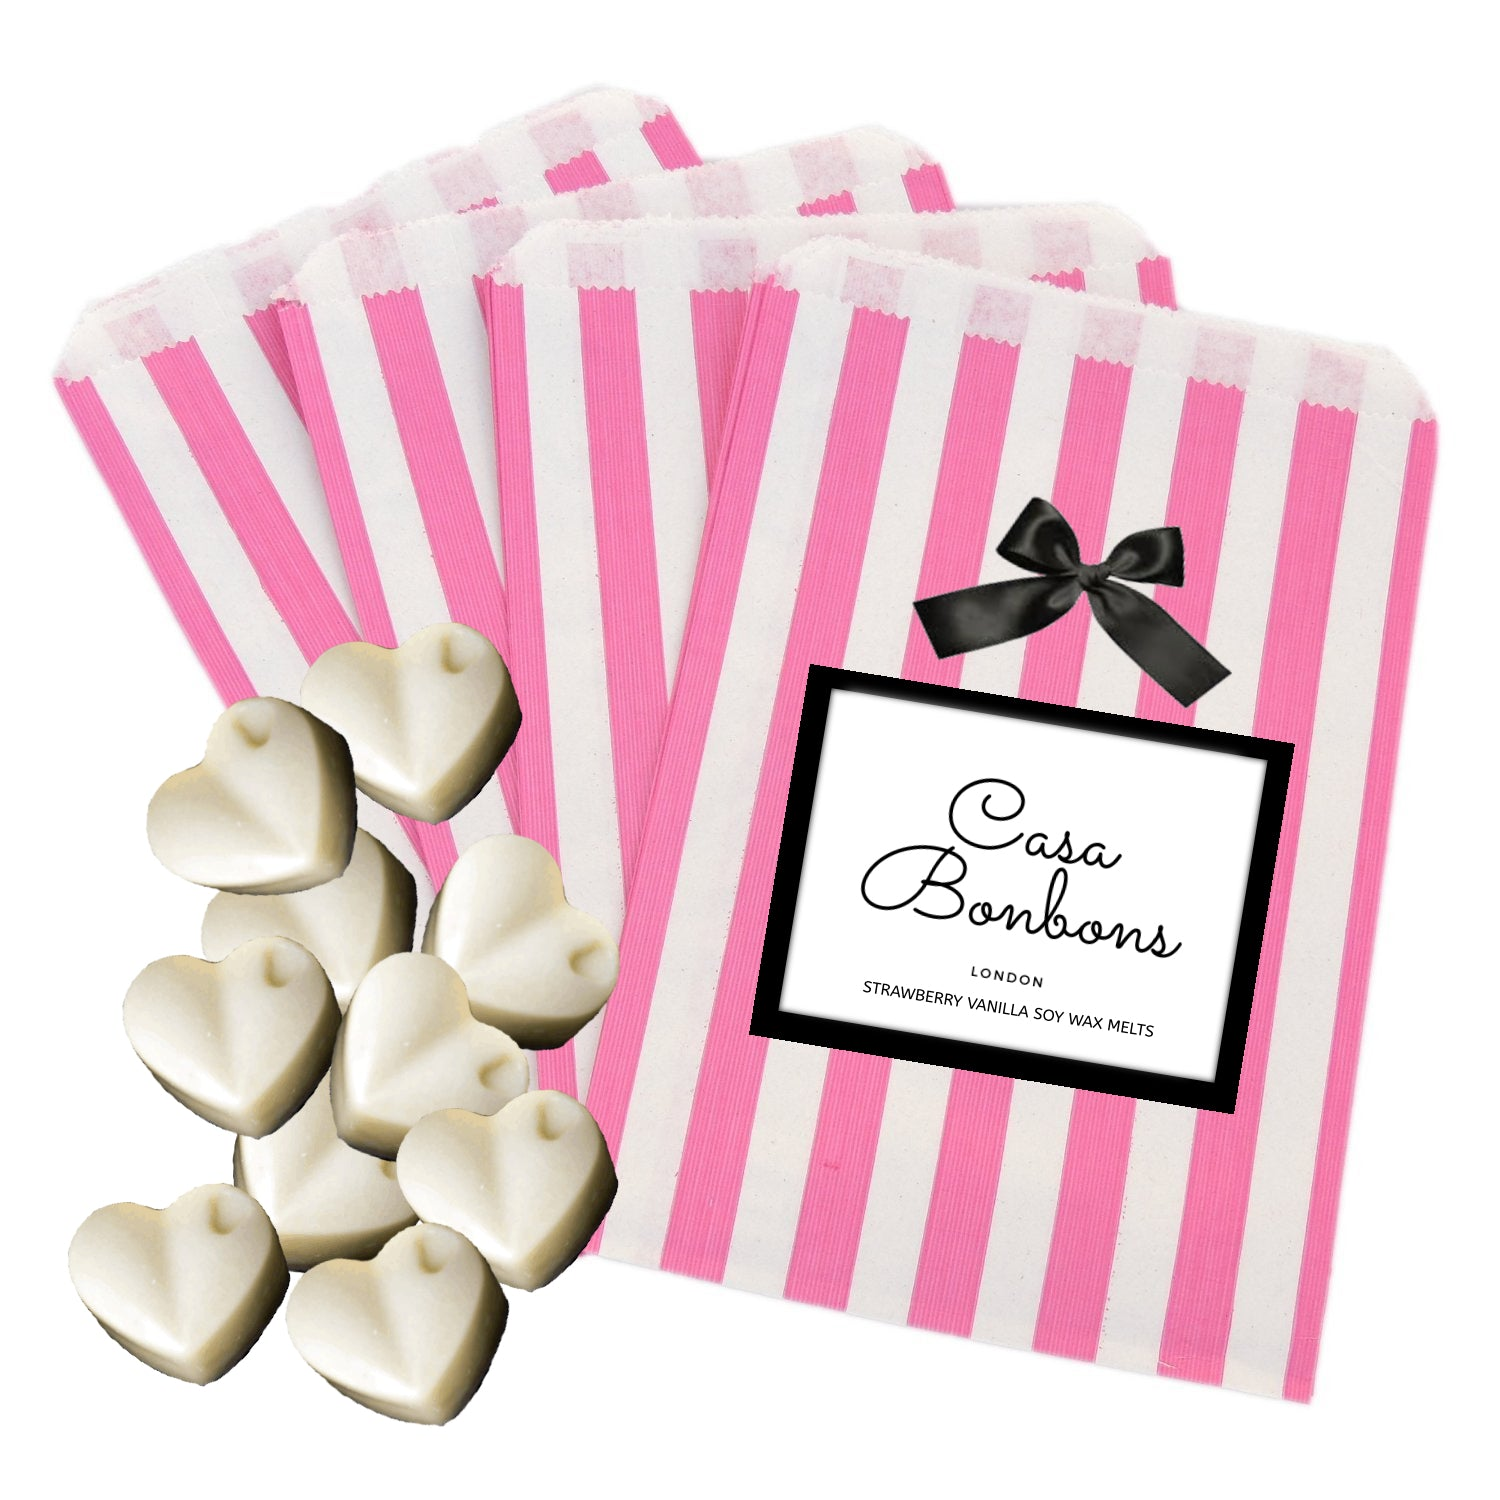 Strawberry & Vanilla gentle scented Soy Wax Melts (10 hearts), PRE-ORDER delivery around 15th of December - natoorio